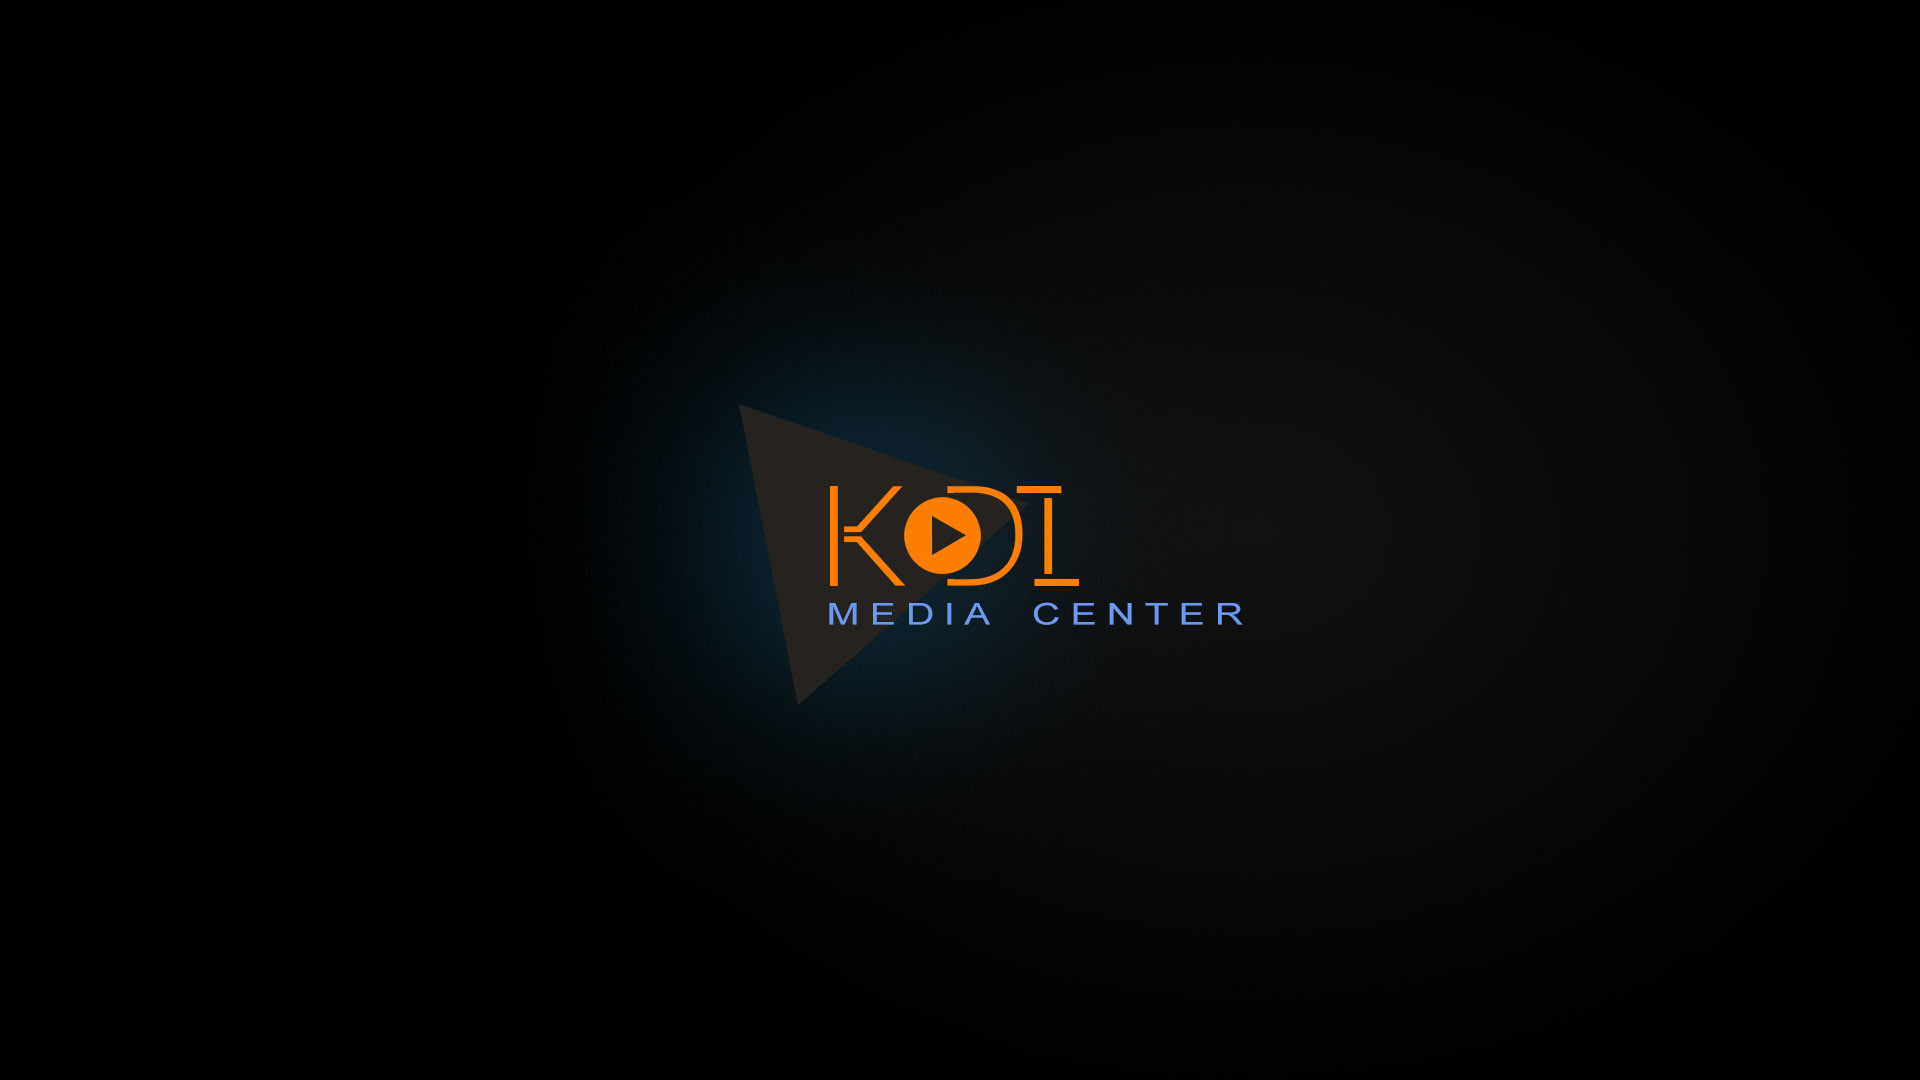 1920x1080 Kodi Wallpaper Movies In Theaters